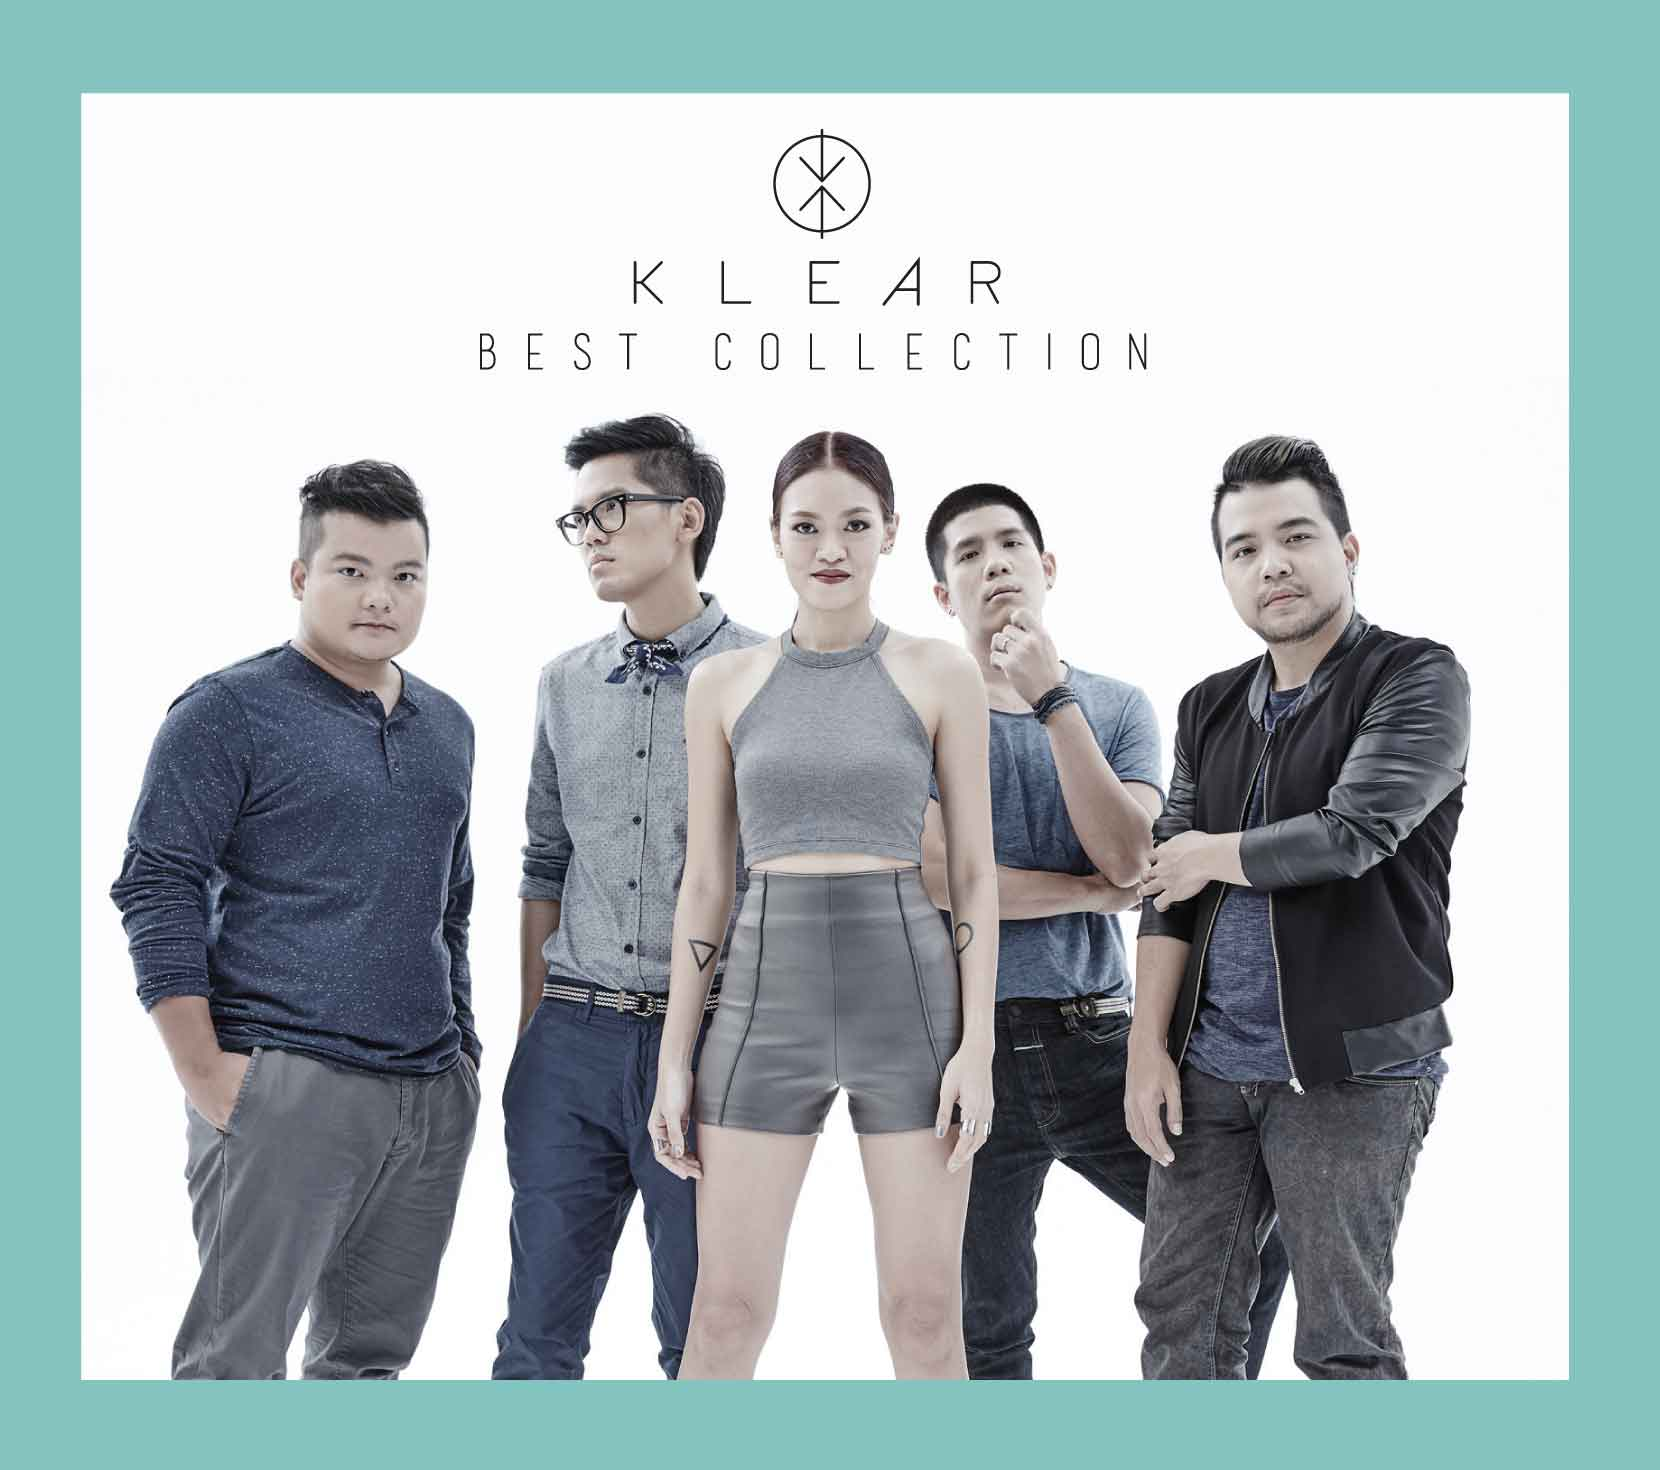 CD Klear Best Collection